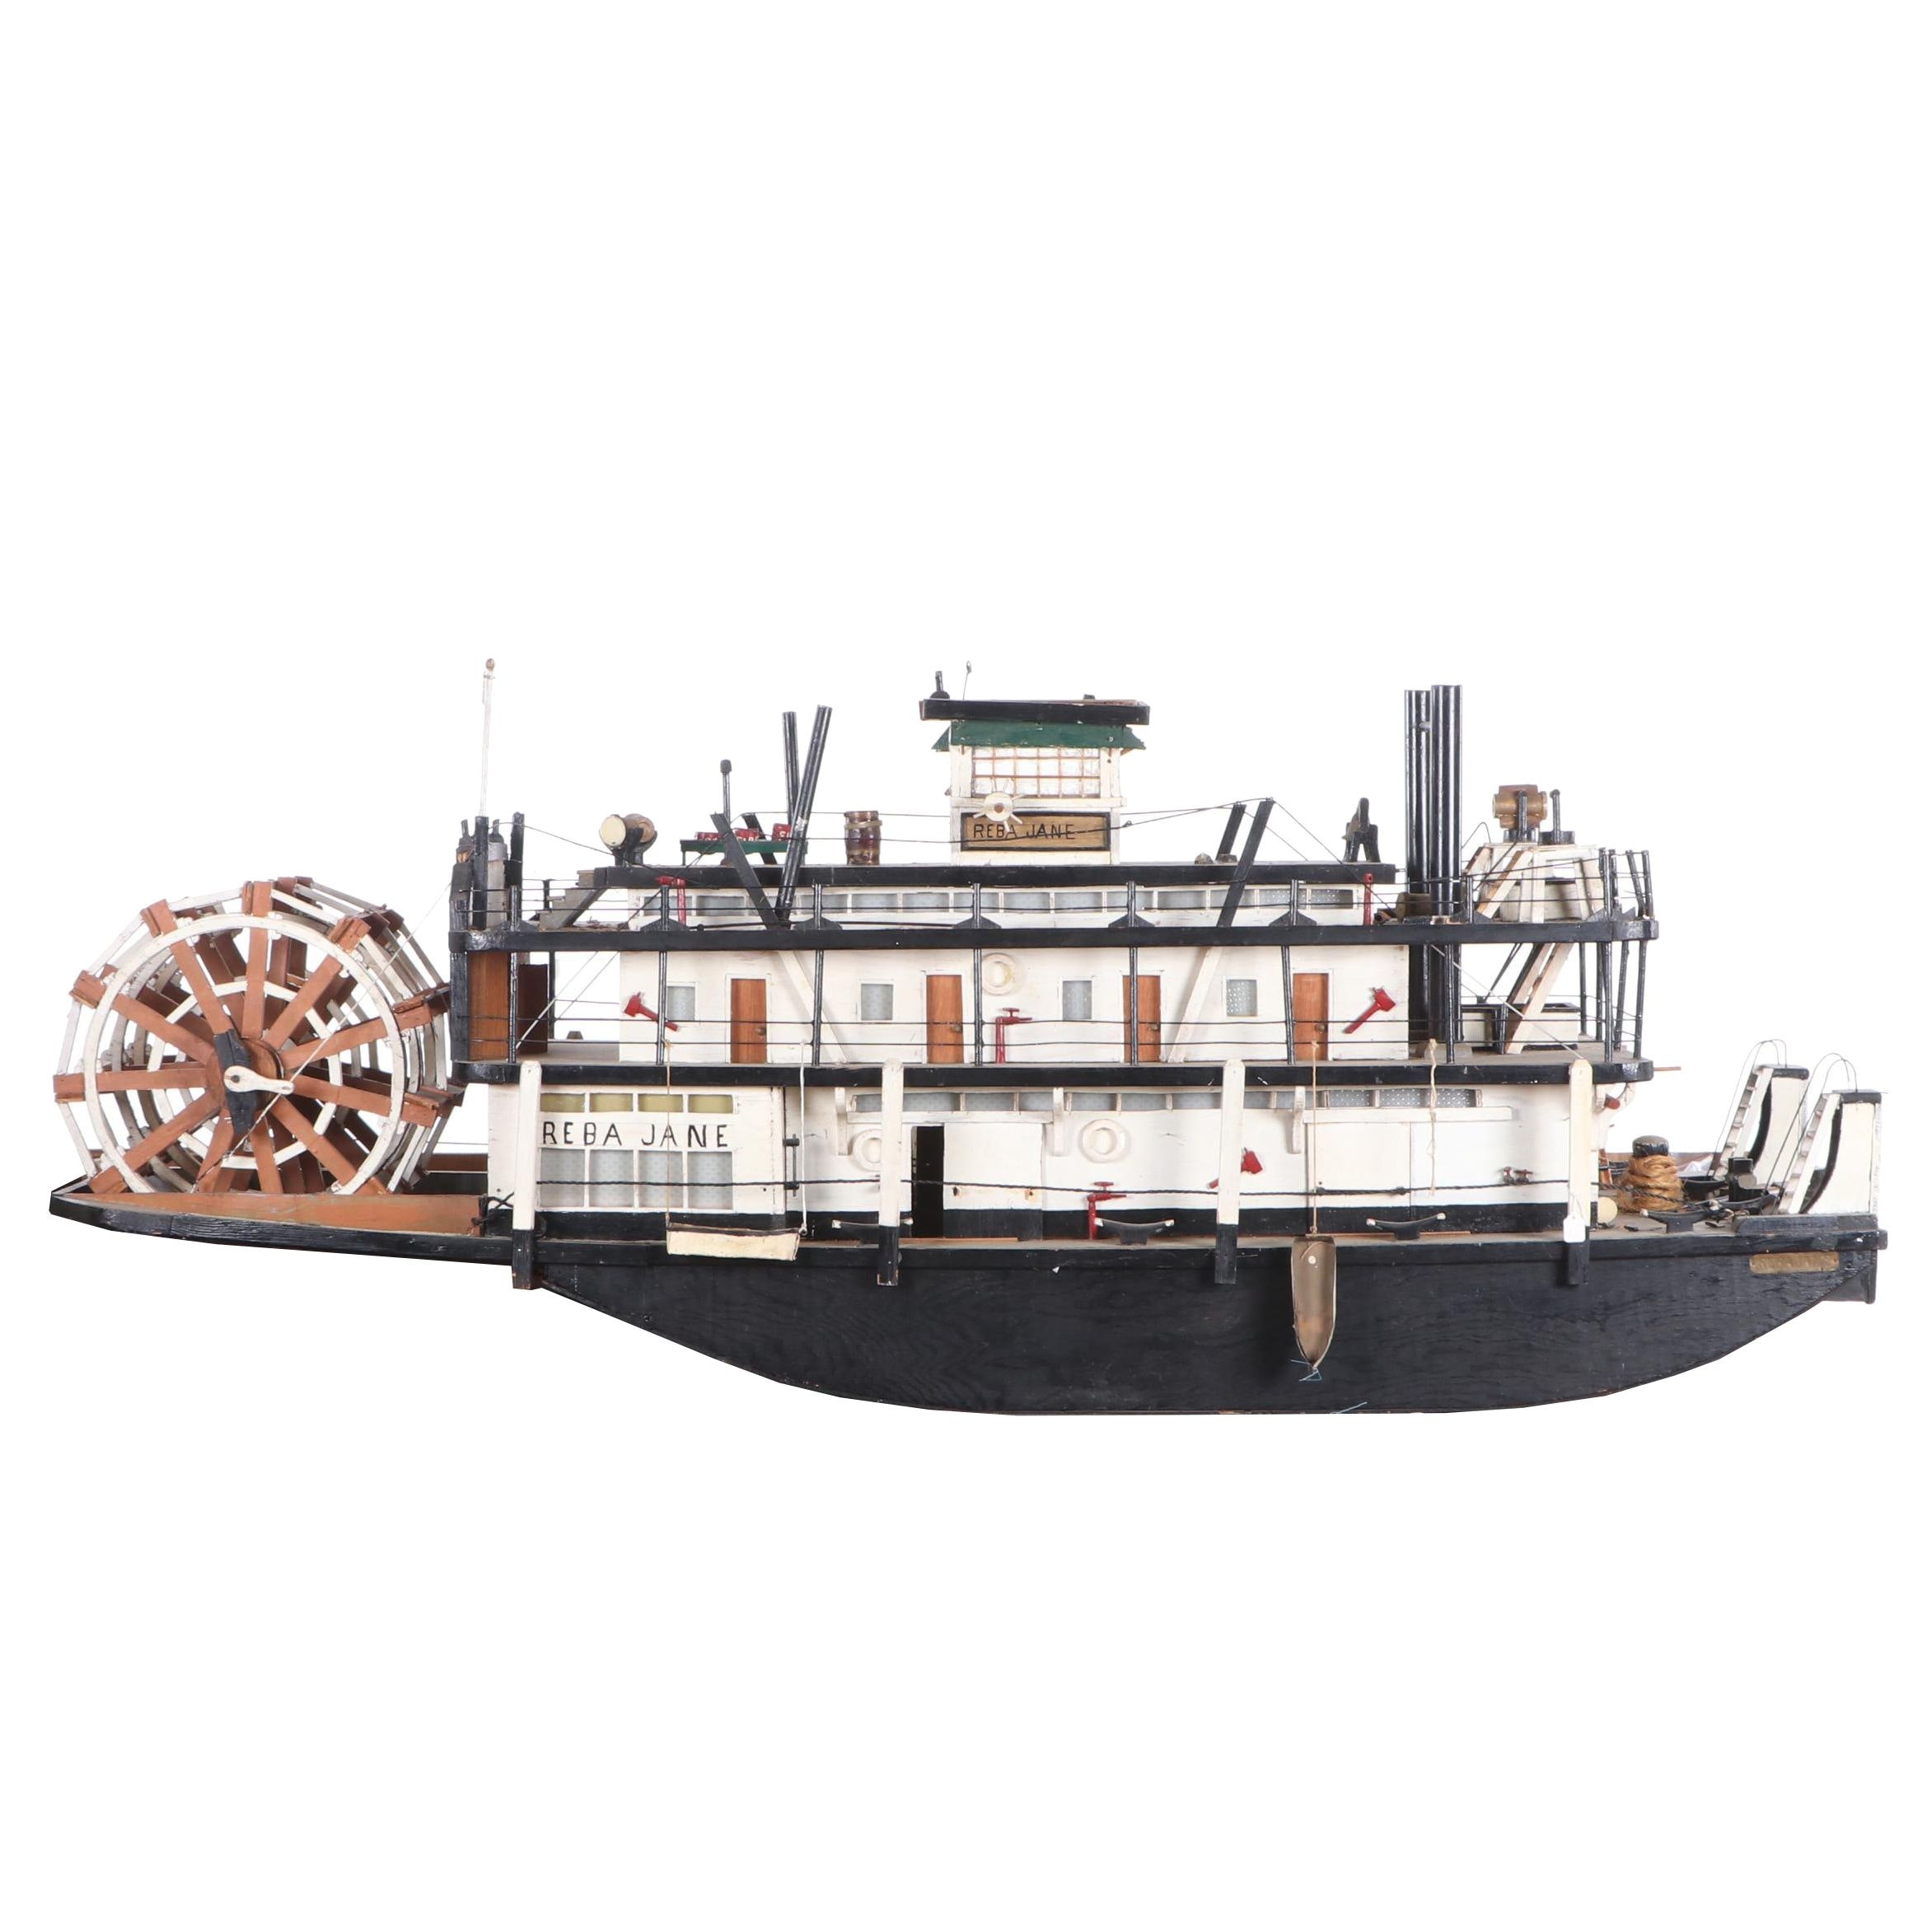 "Large Wooden Model of ""Reba Jane"" Paddlesteamer"